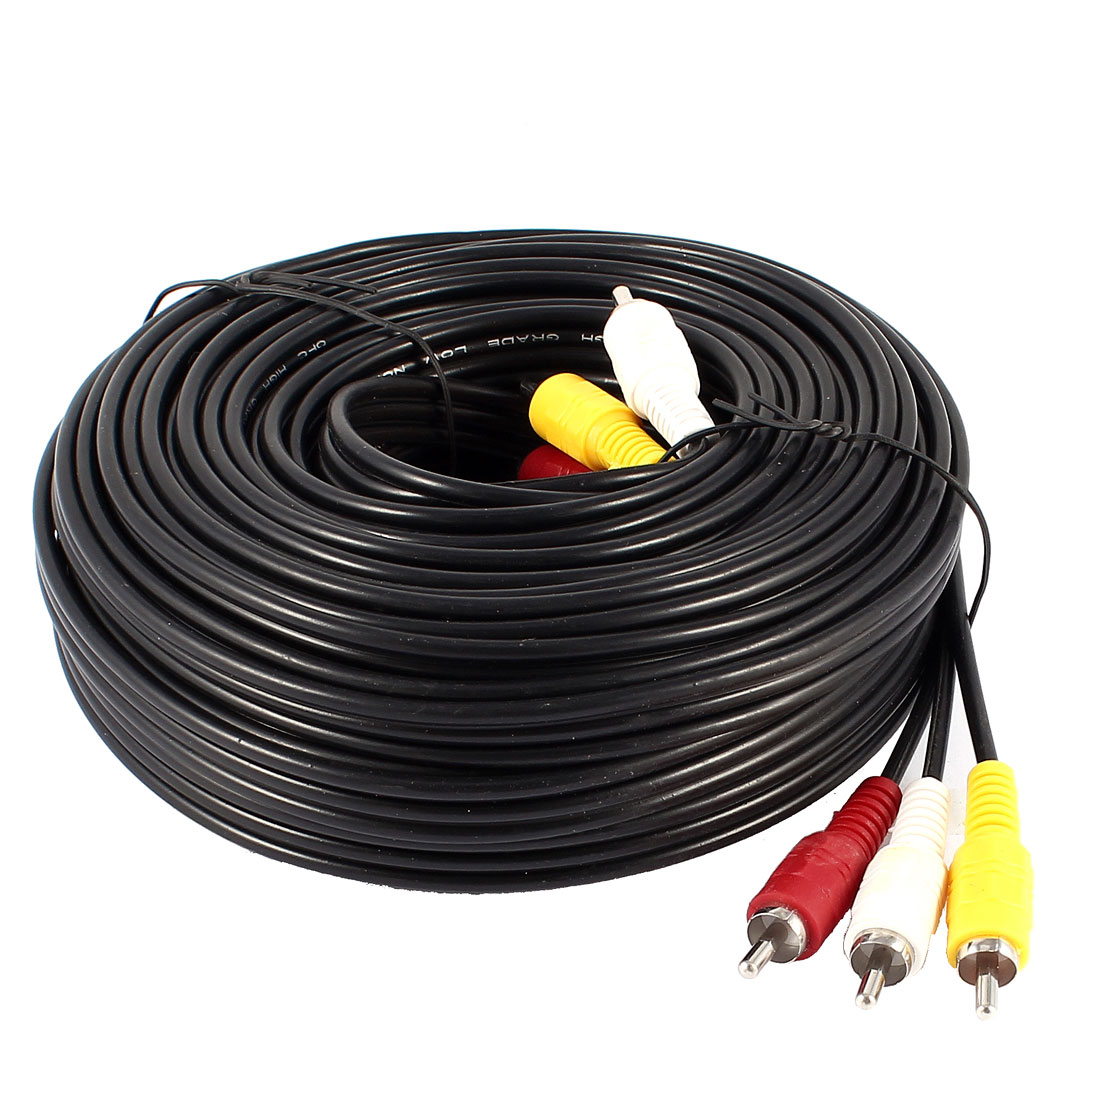 Unique Bargains 50ft 15M Length AV Audio Video Adapter Cord 3 RCA Male to 3 Male M/M Y Cable